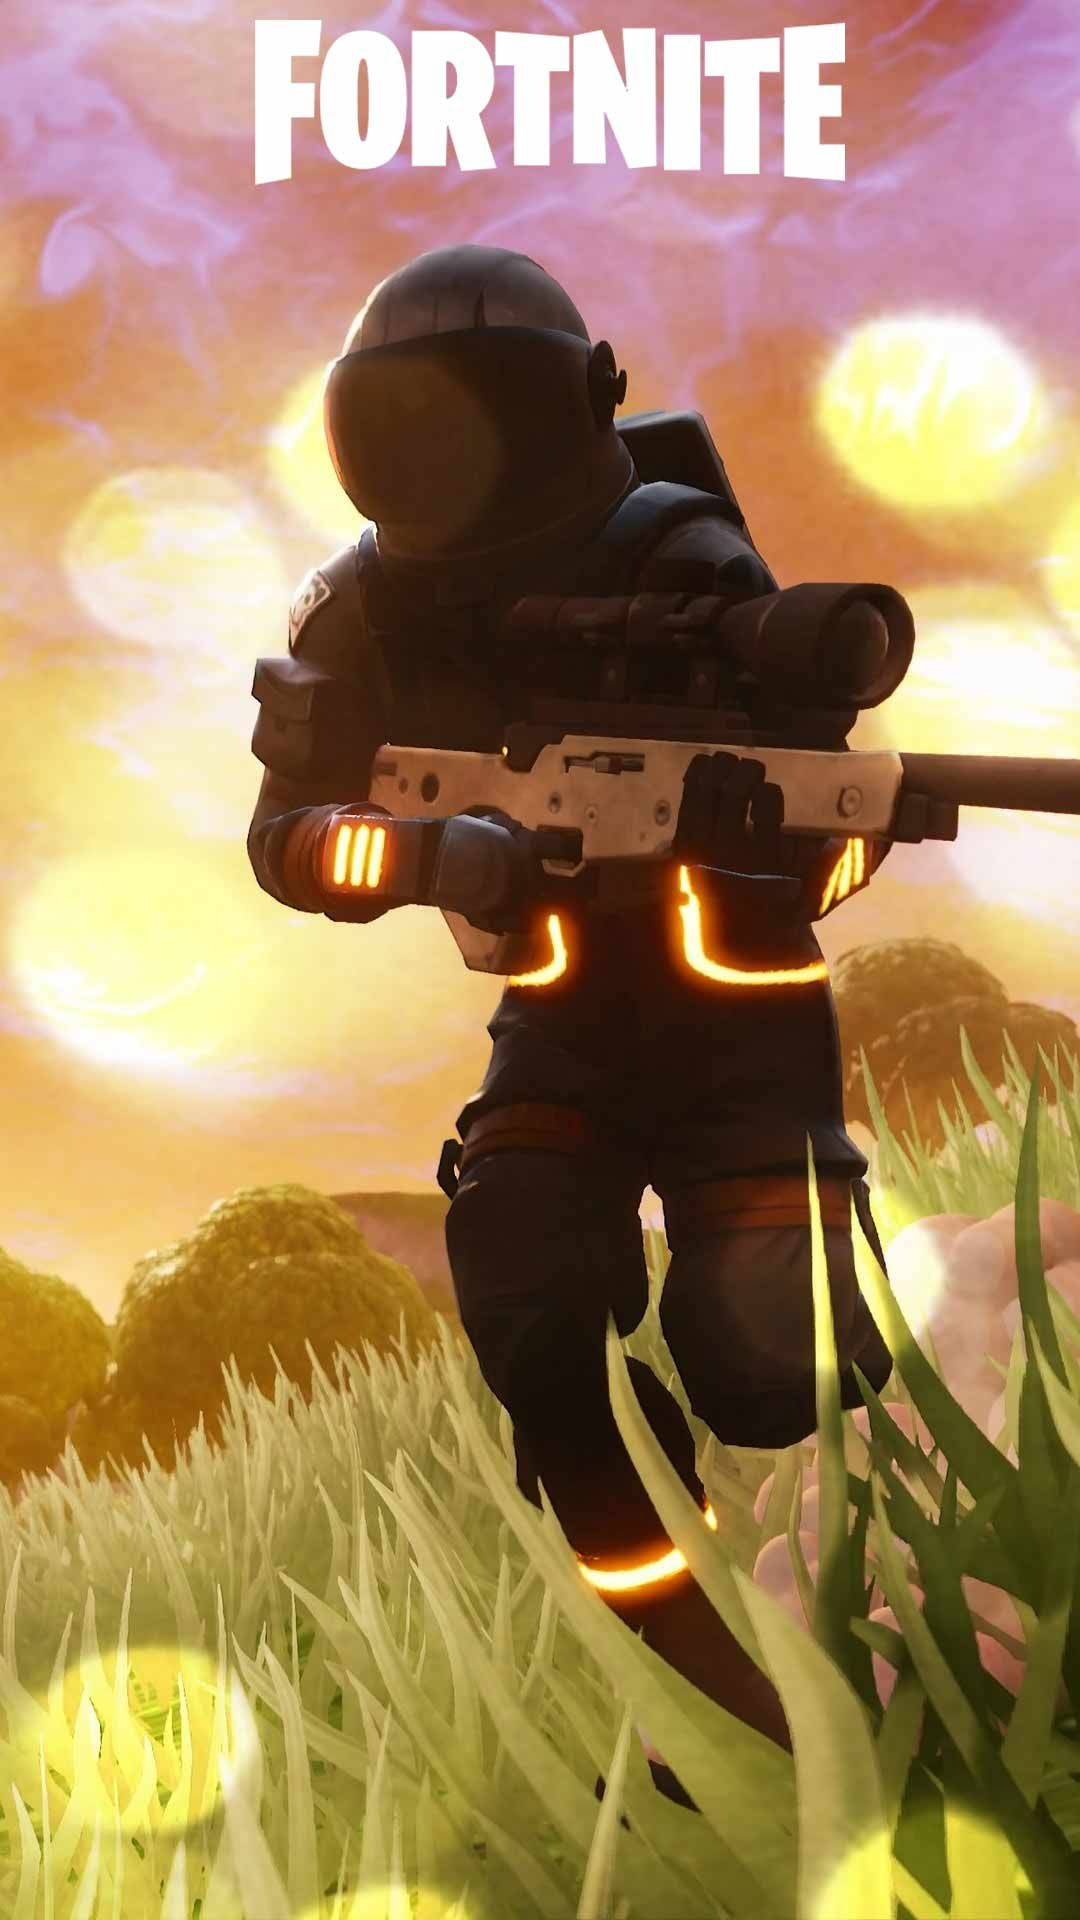 30+ Fortnite wallpaper HD phone backgrounds for iPhone